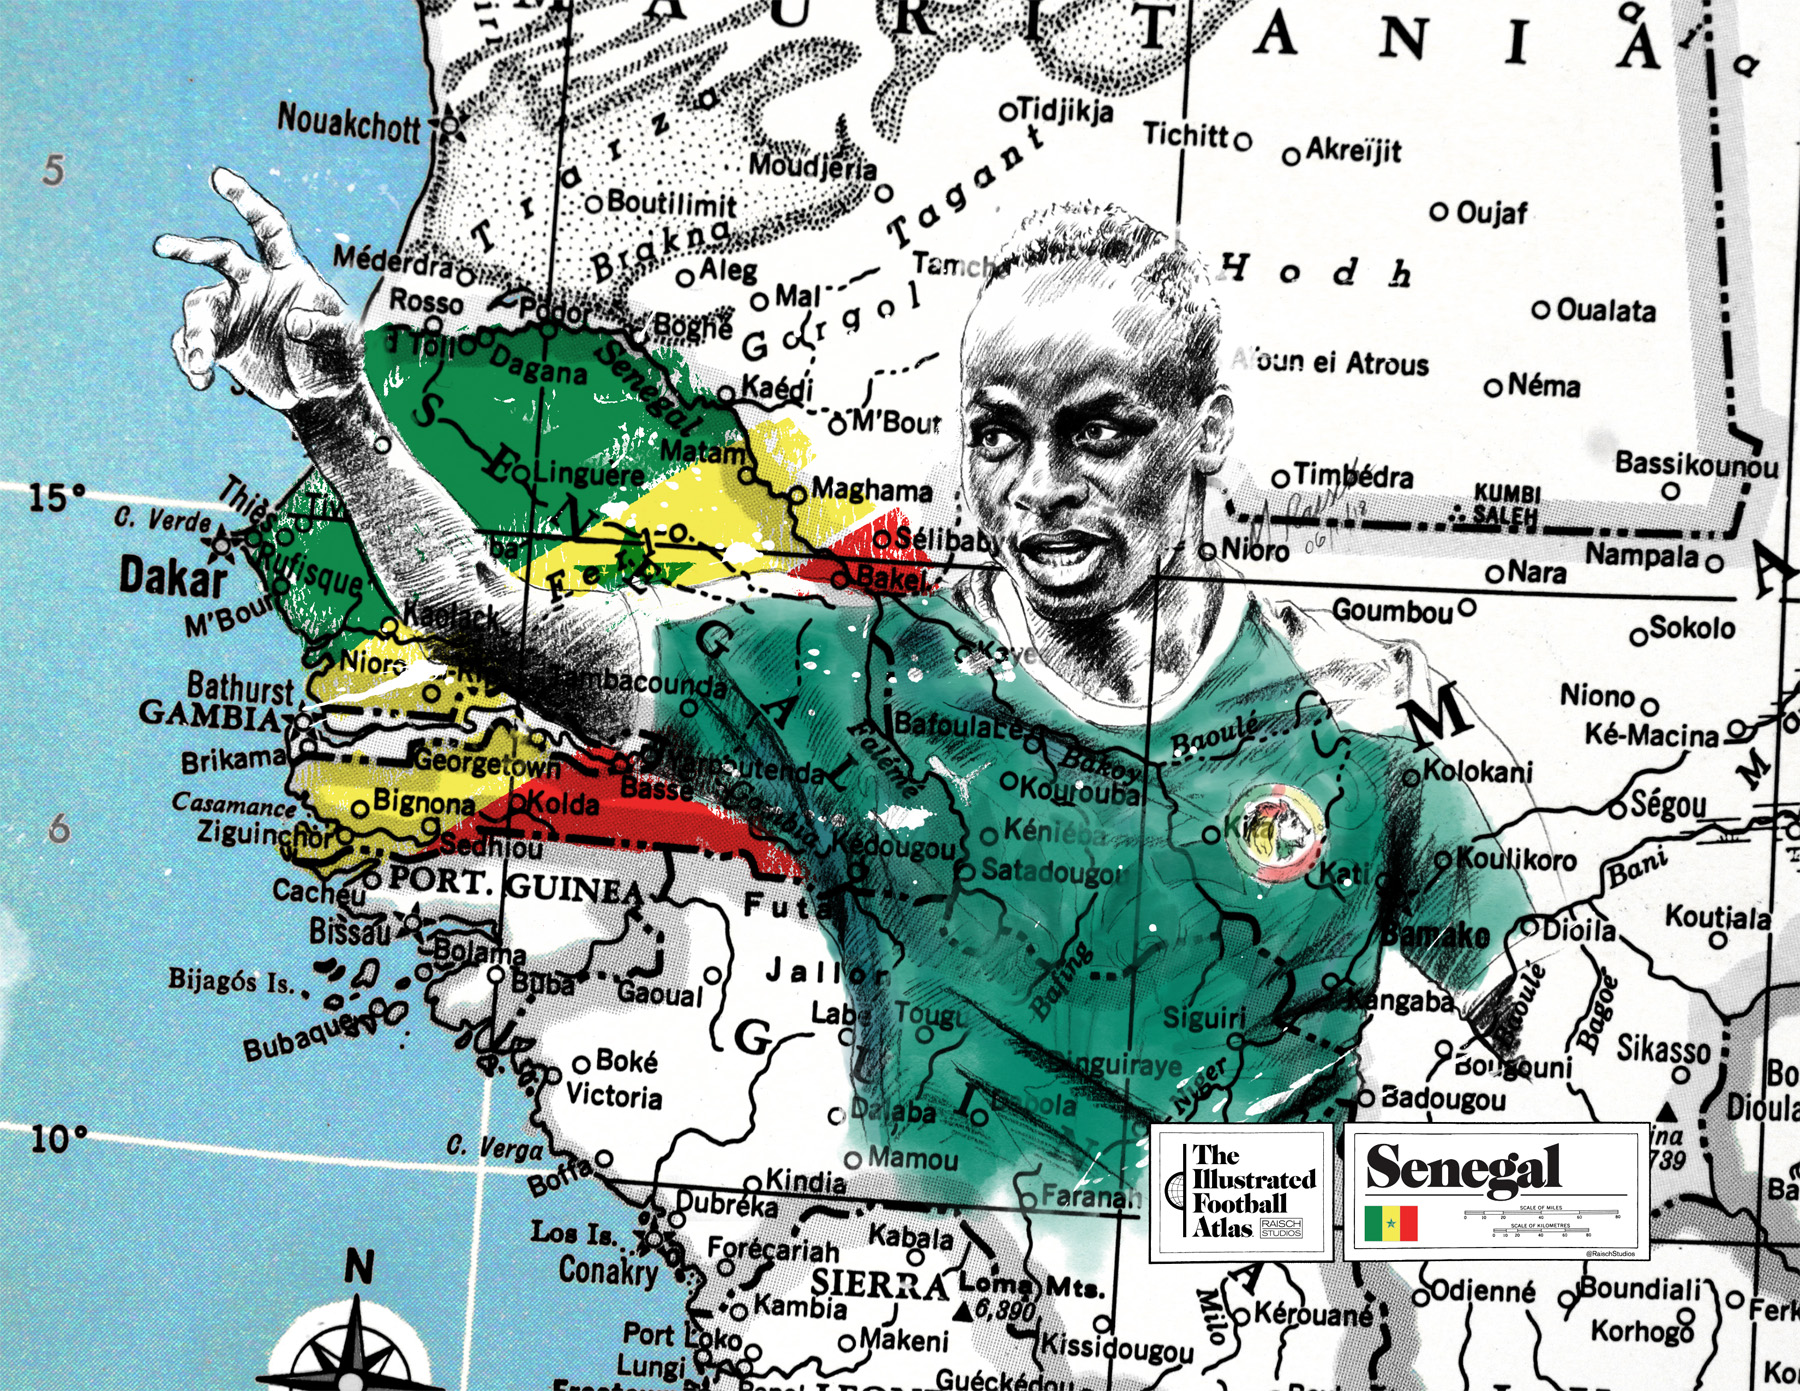 Senegal_the_football_atlas.jpg